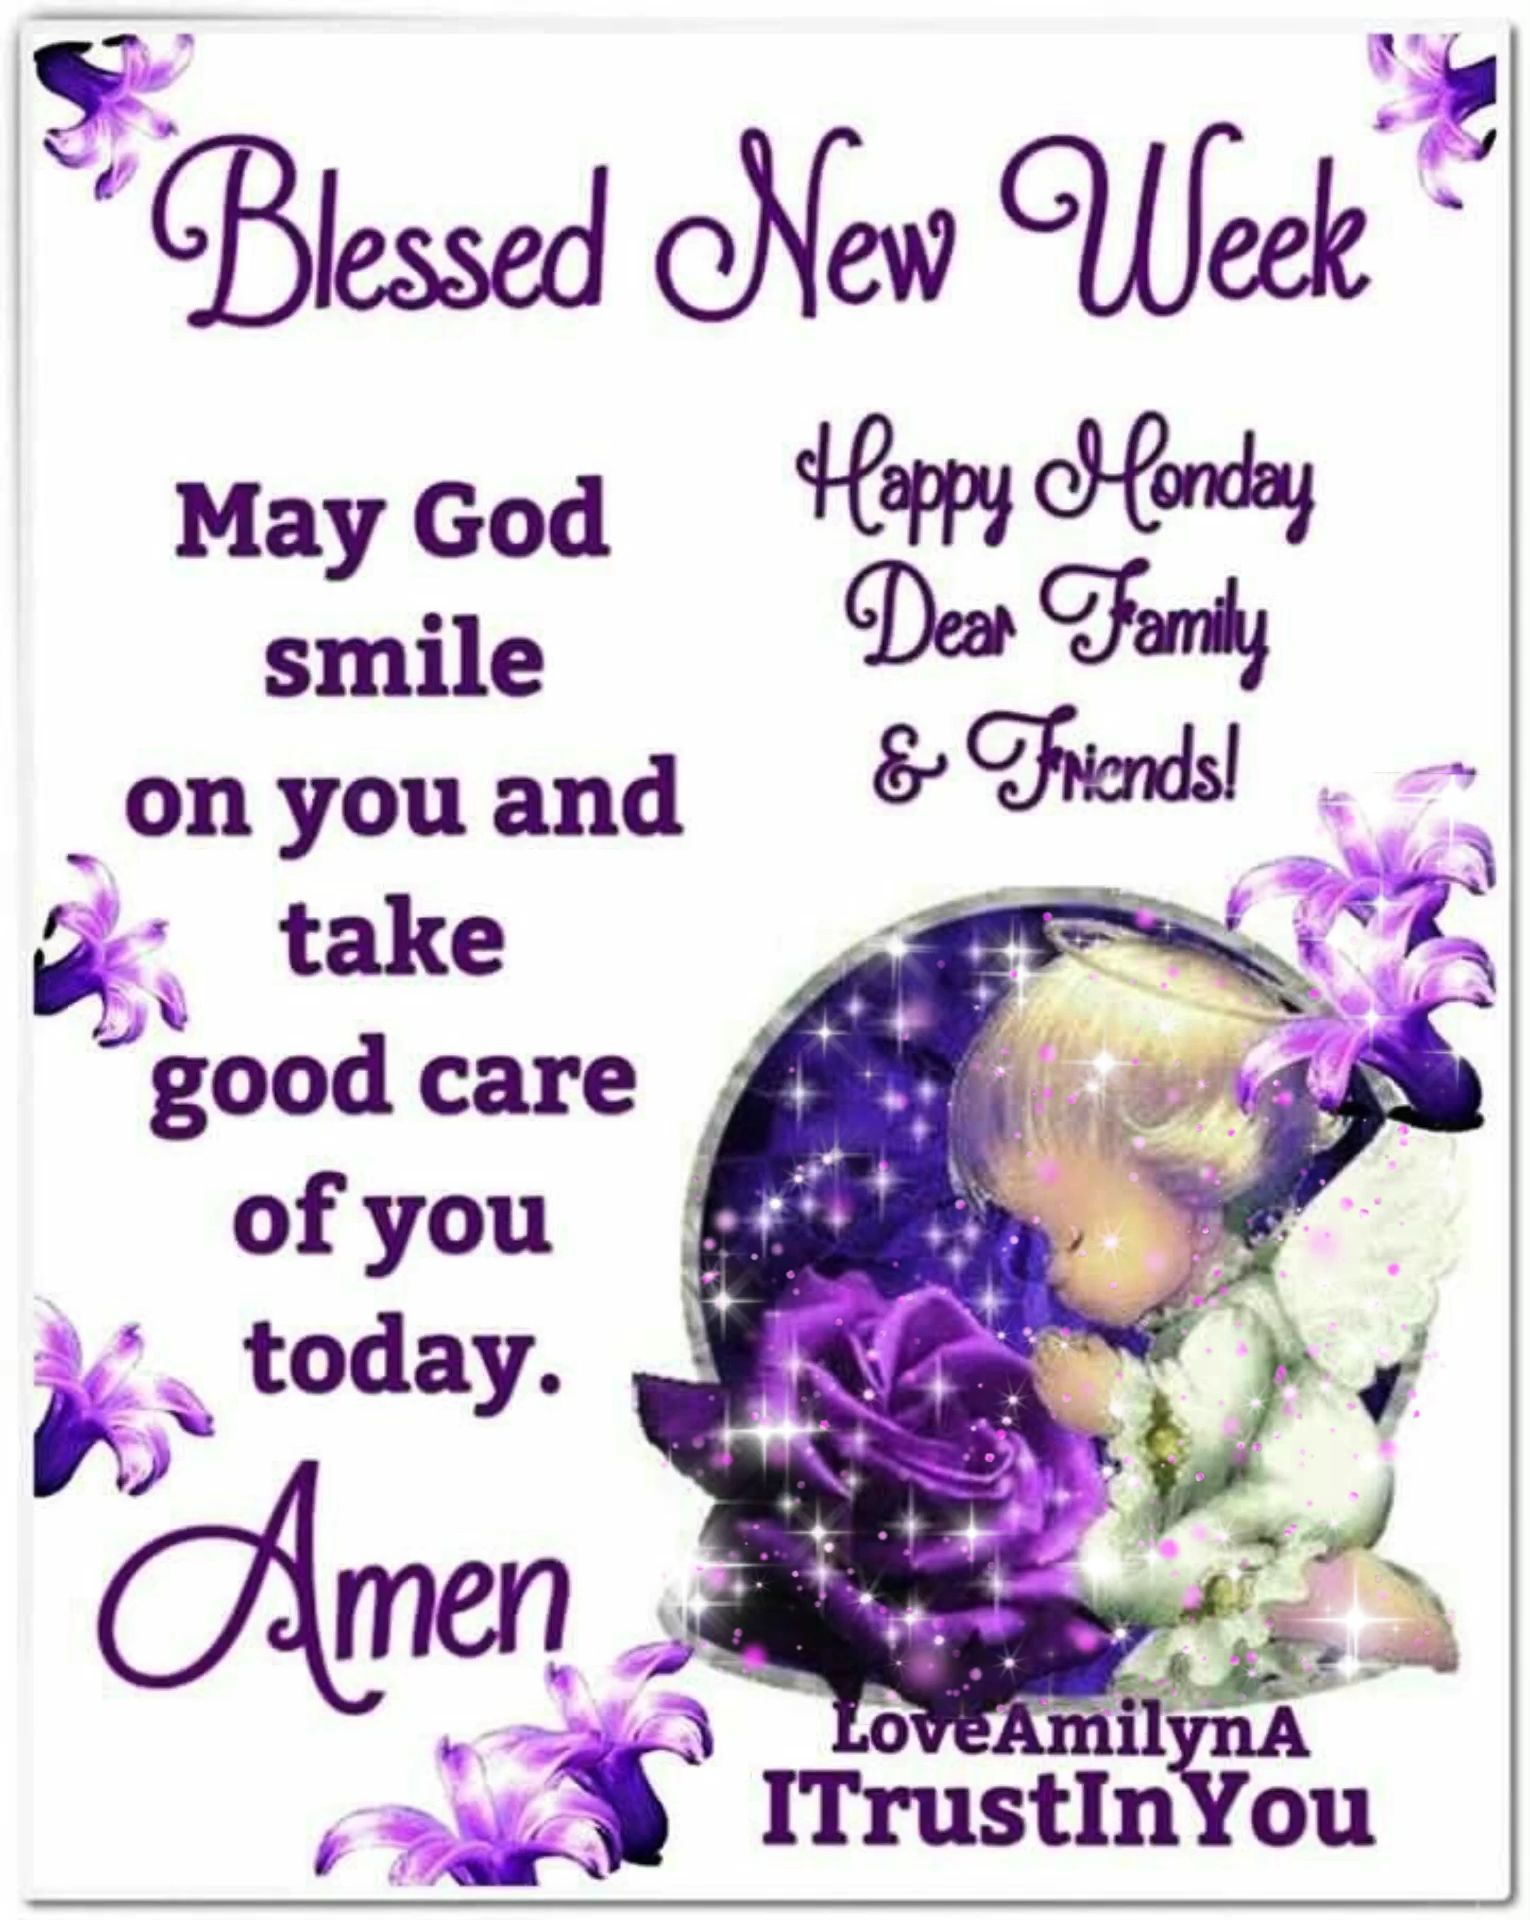 Blessing For Monday And New Week!   20 September 2021